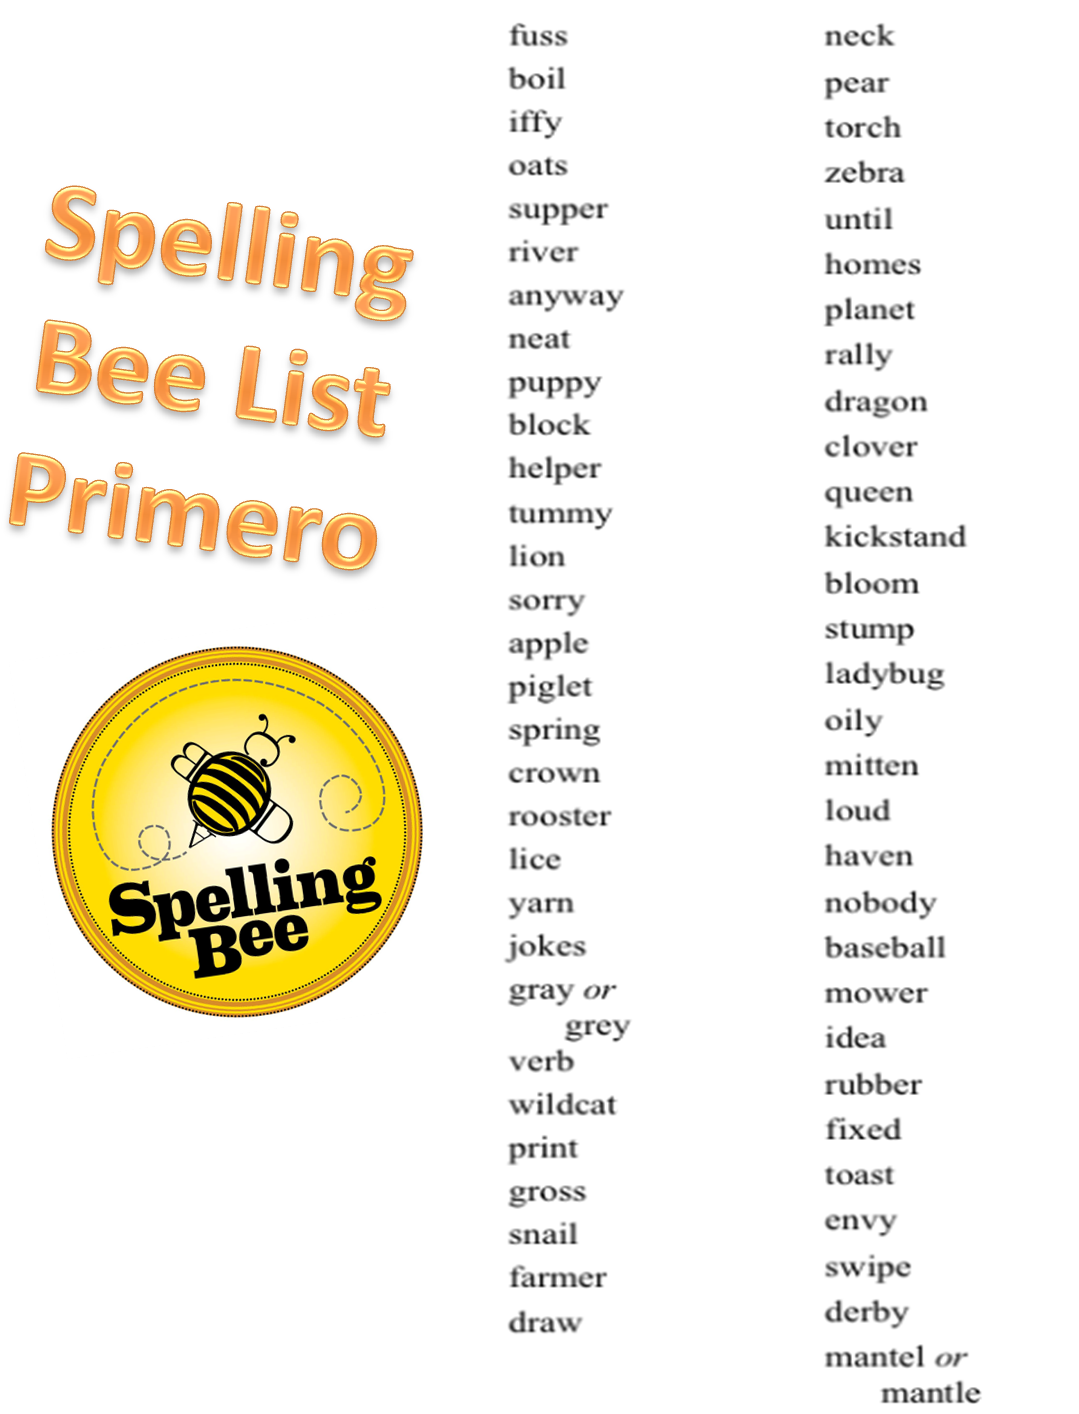 Download Our Spelling Test, Spelling Quiz, And Spelling